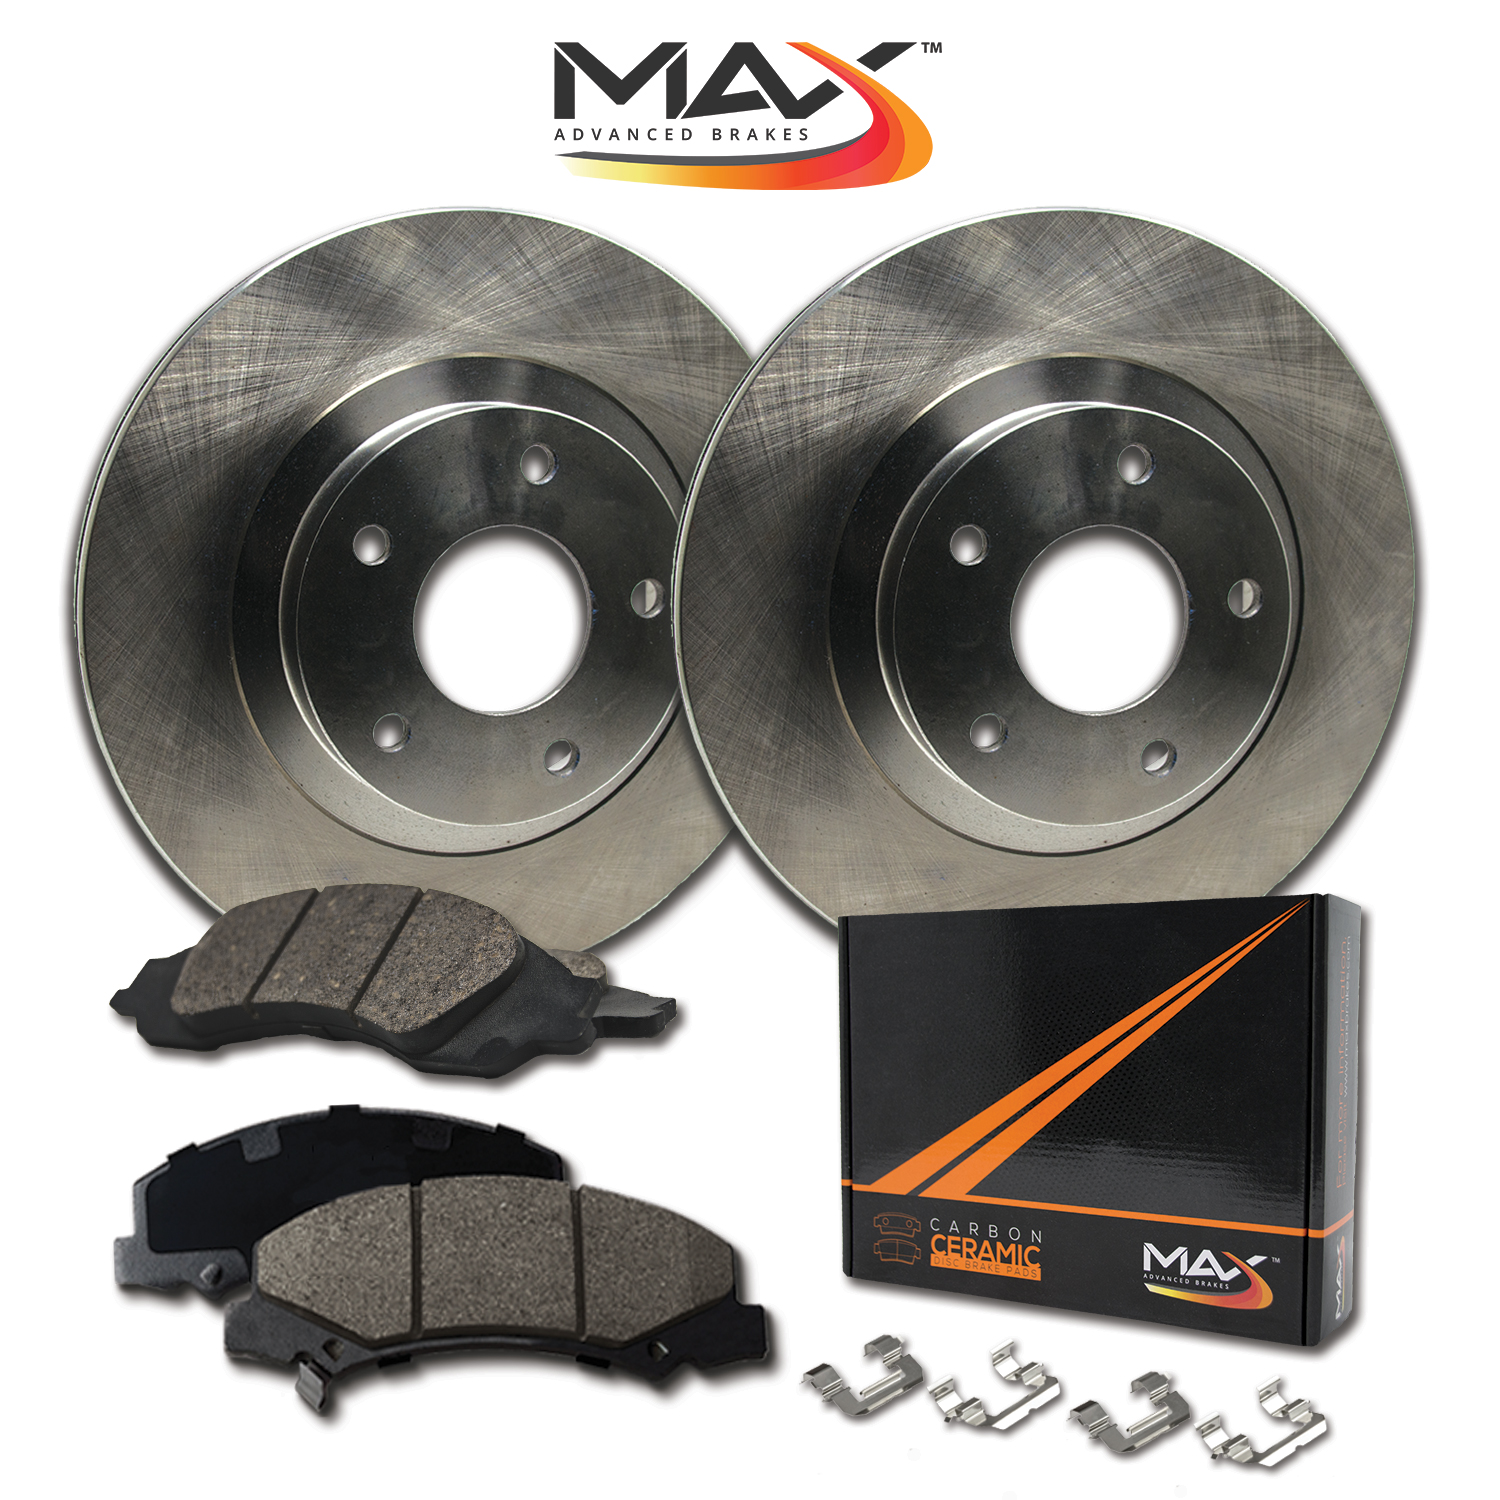 FRONT KIT OE Replacement Brake Rotors with Ceramic Pads /& Hardware Kit